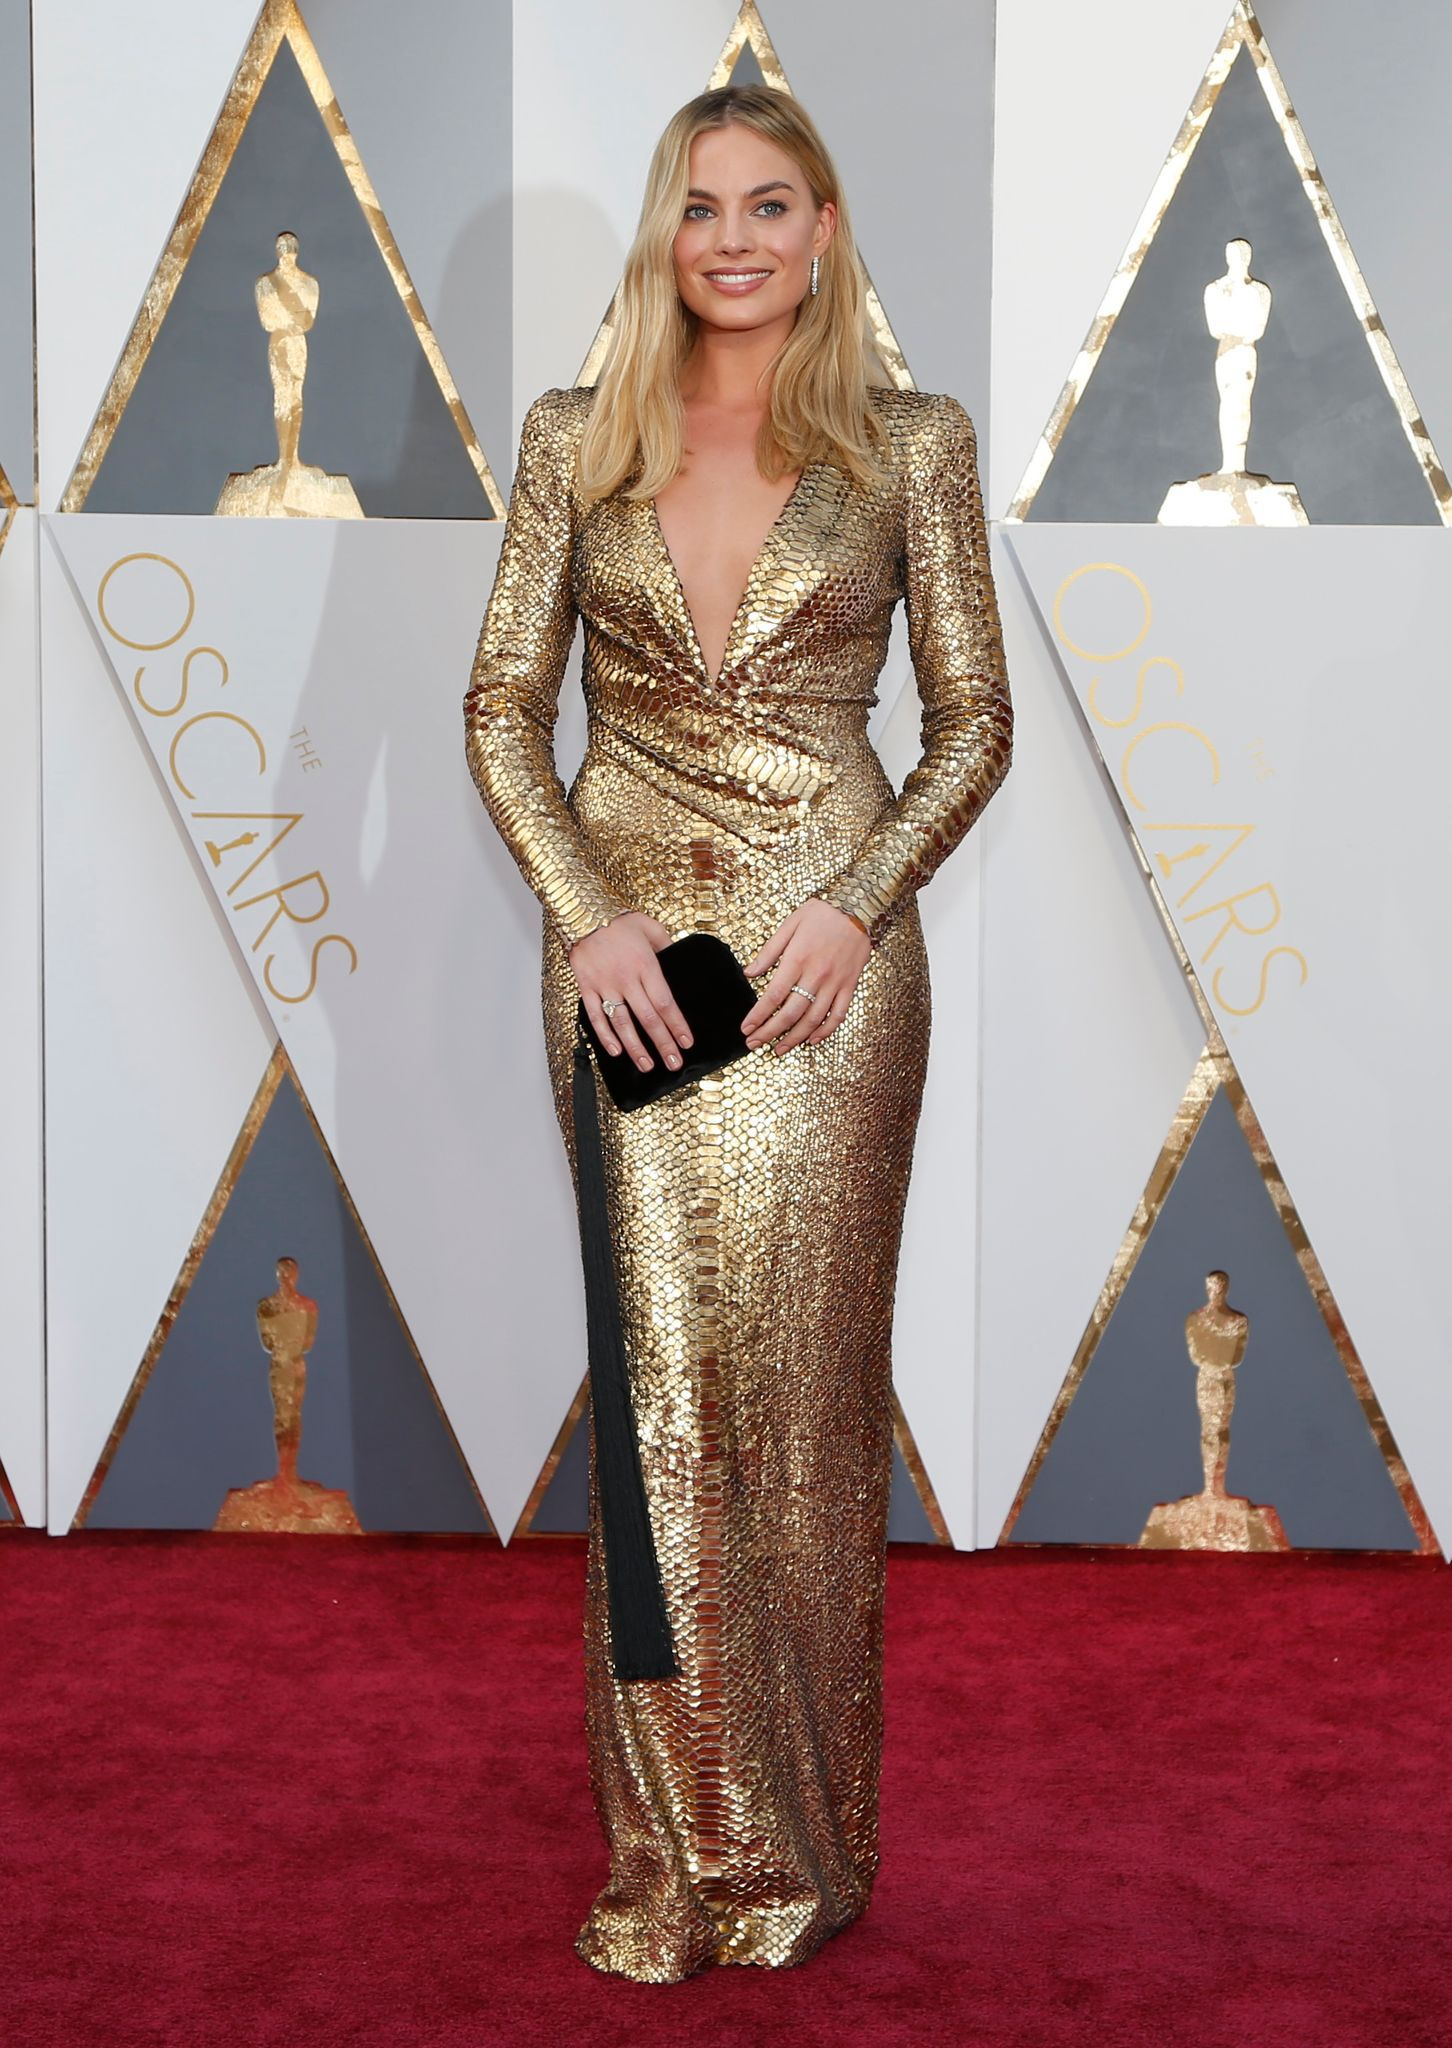 oscars-2016-margot-robbie-en-robe_5551125